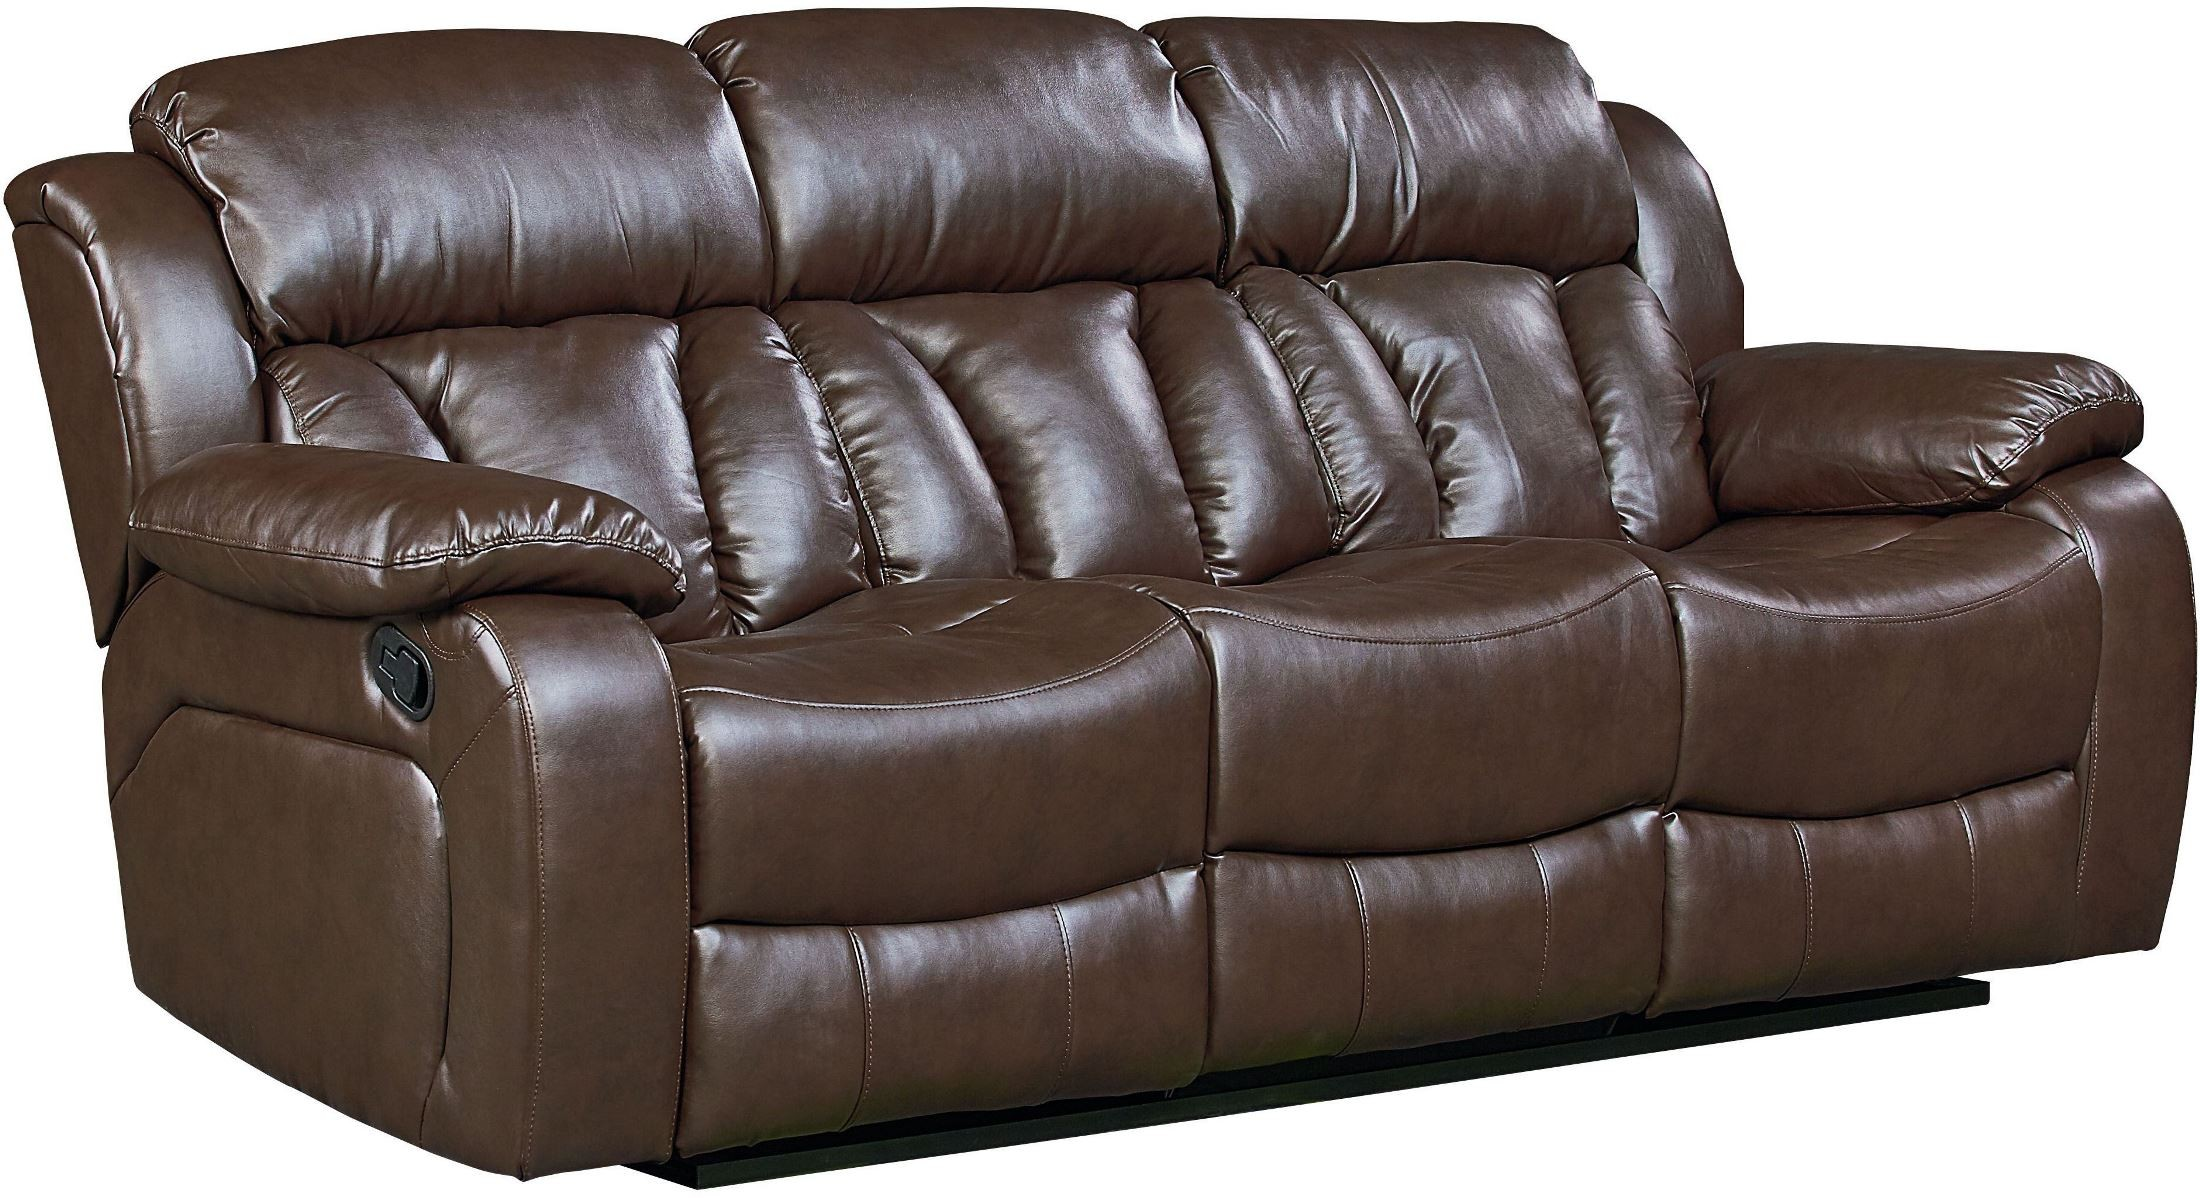 North Shore Chocolate Brown Reclining Living Room Set 4003391 Standard Furniture